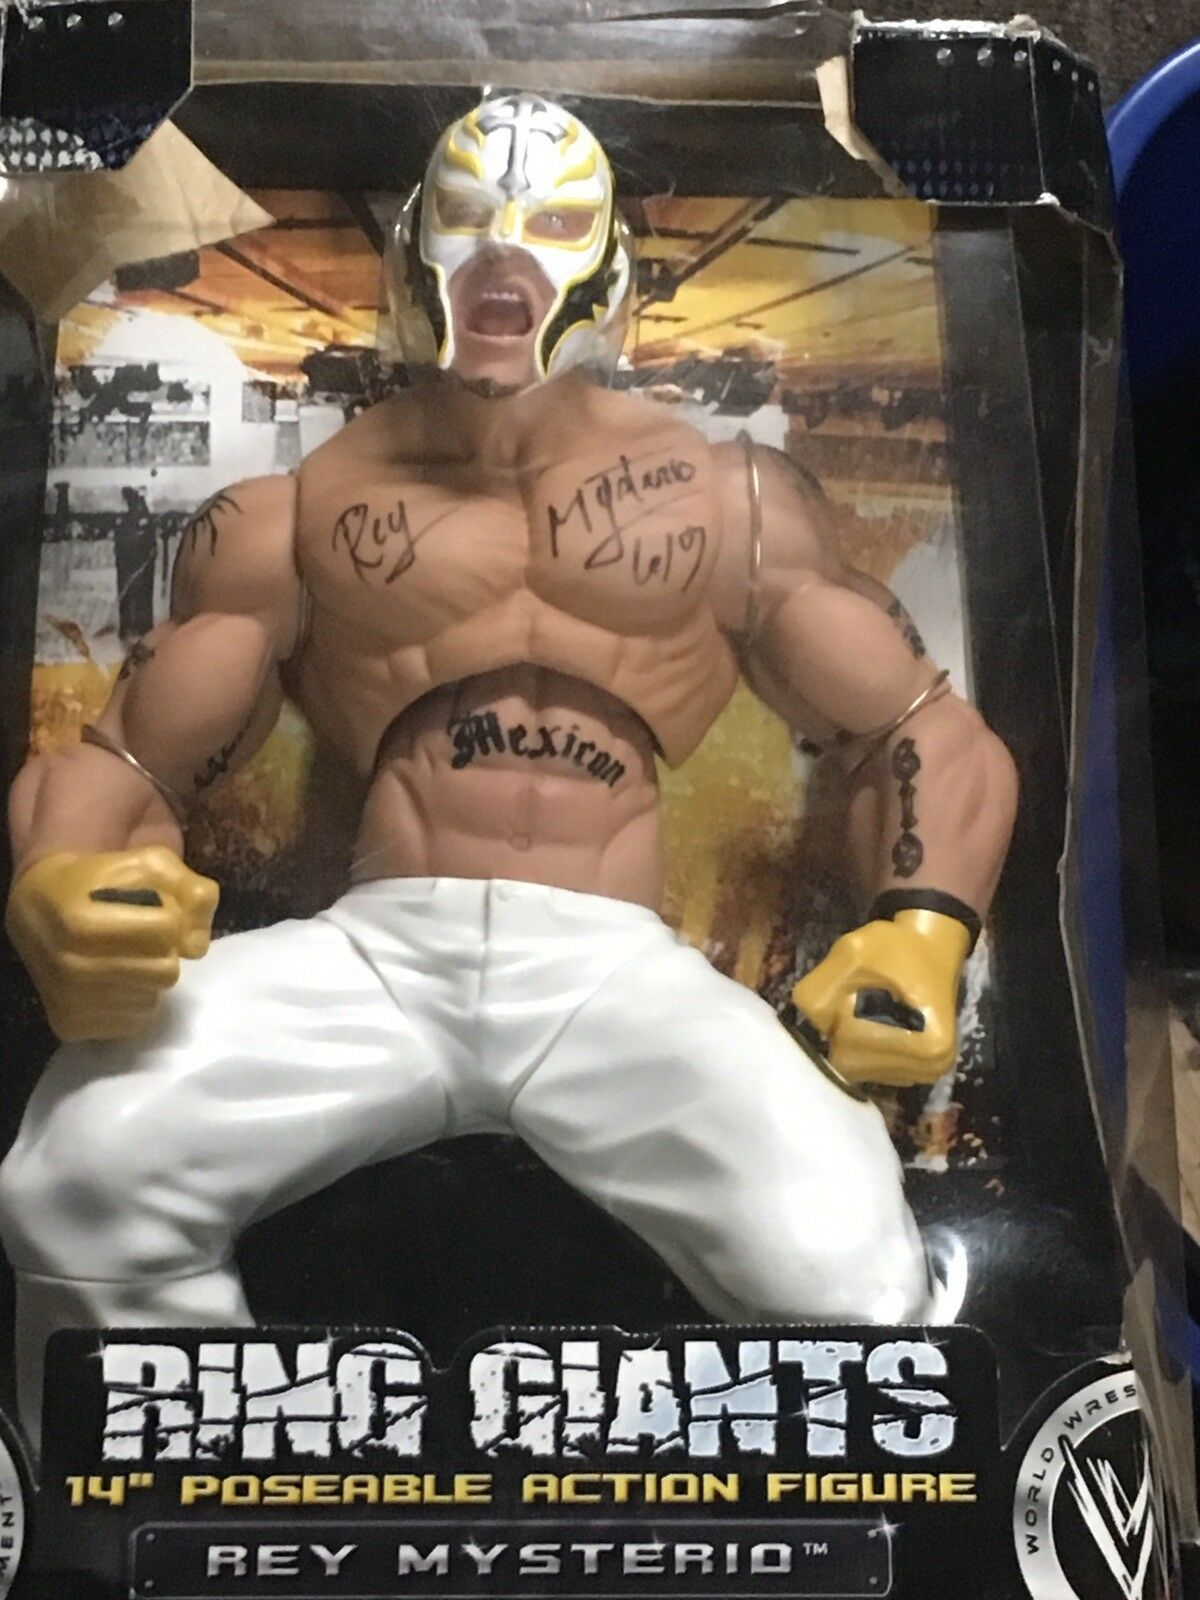 Autographed WWE Rey Mysterio Ring Giants 14 Poseable Action Figure